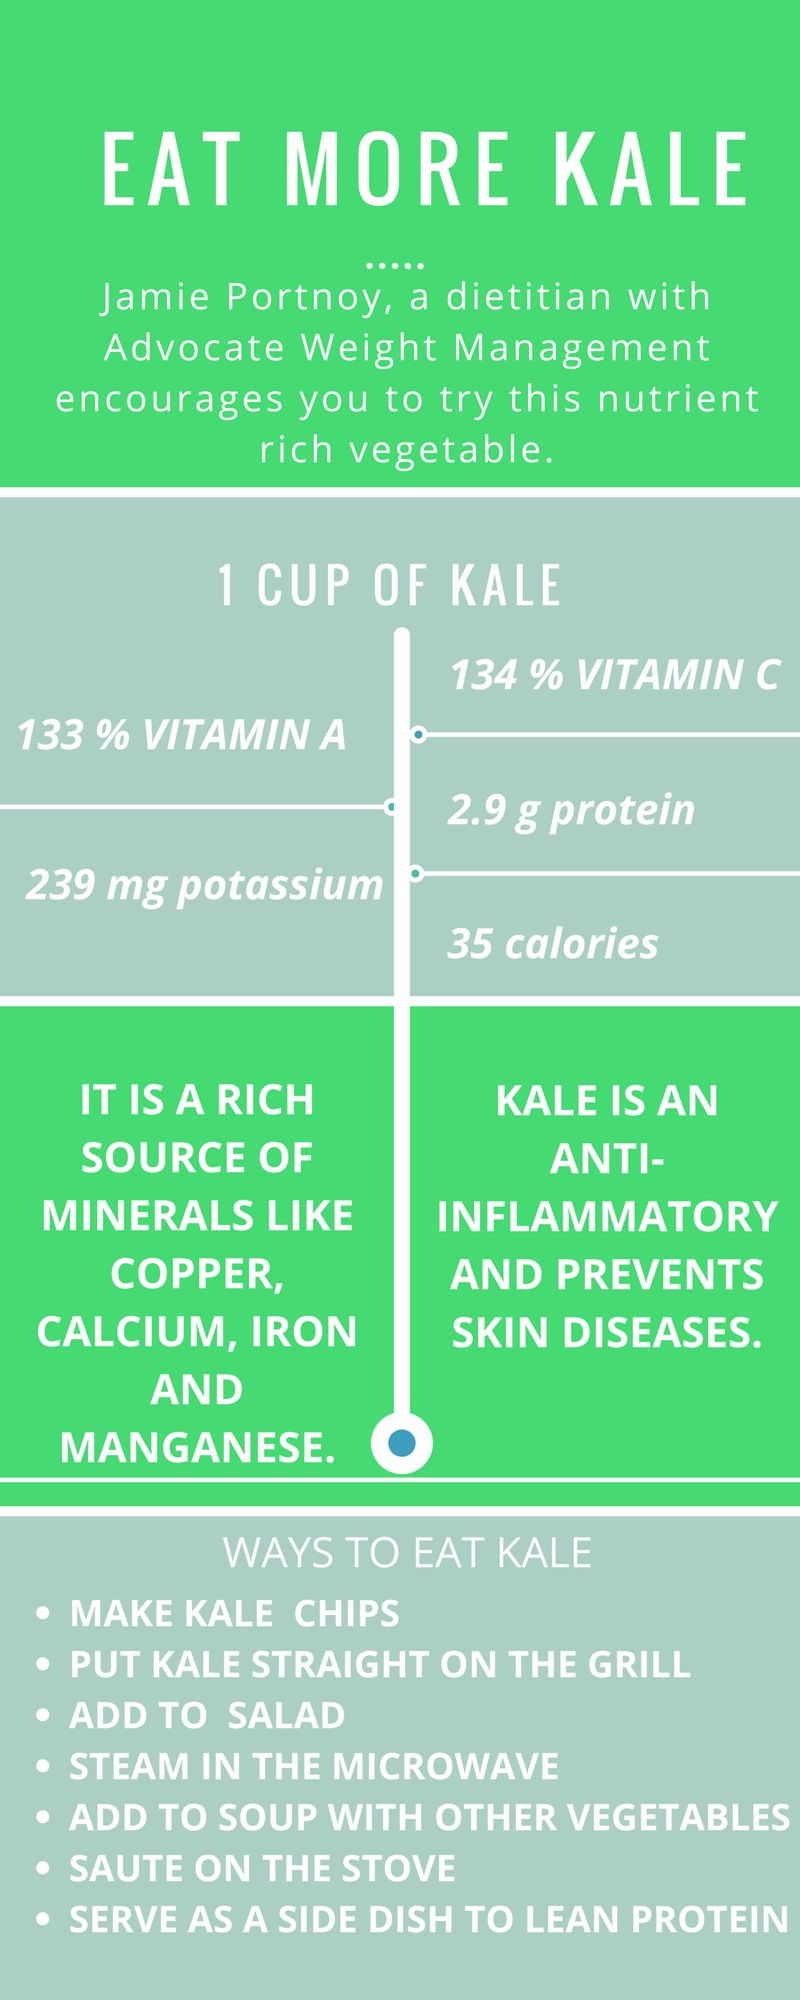 kale infographic camille